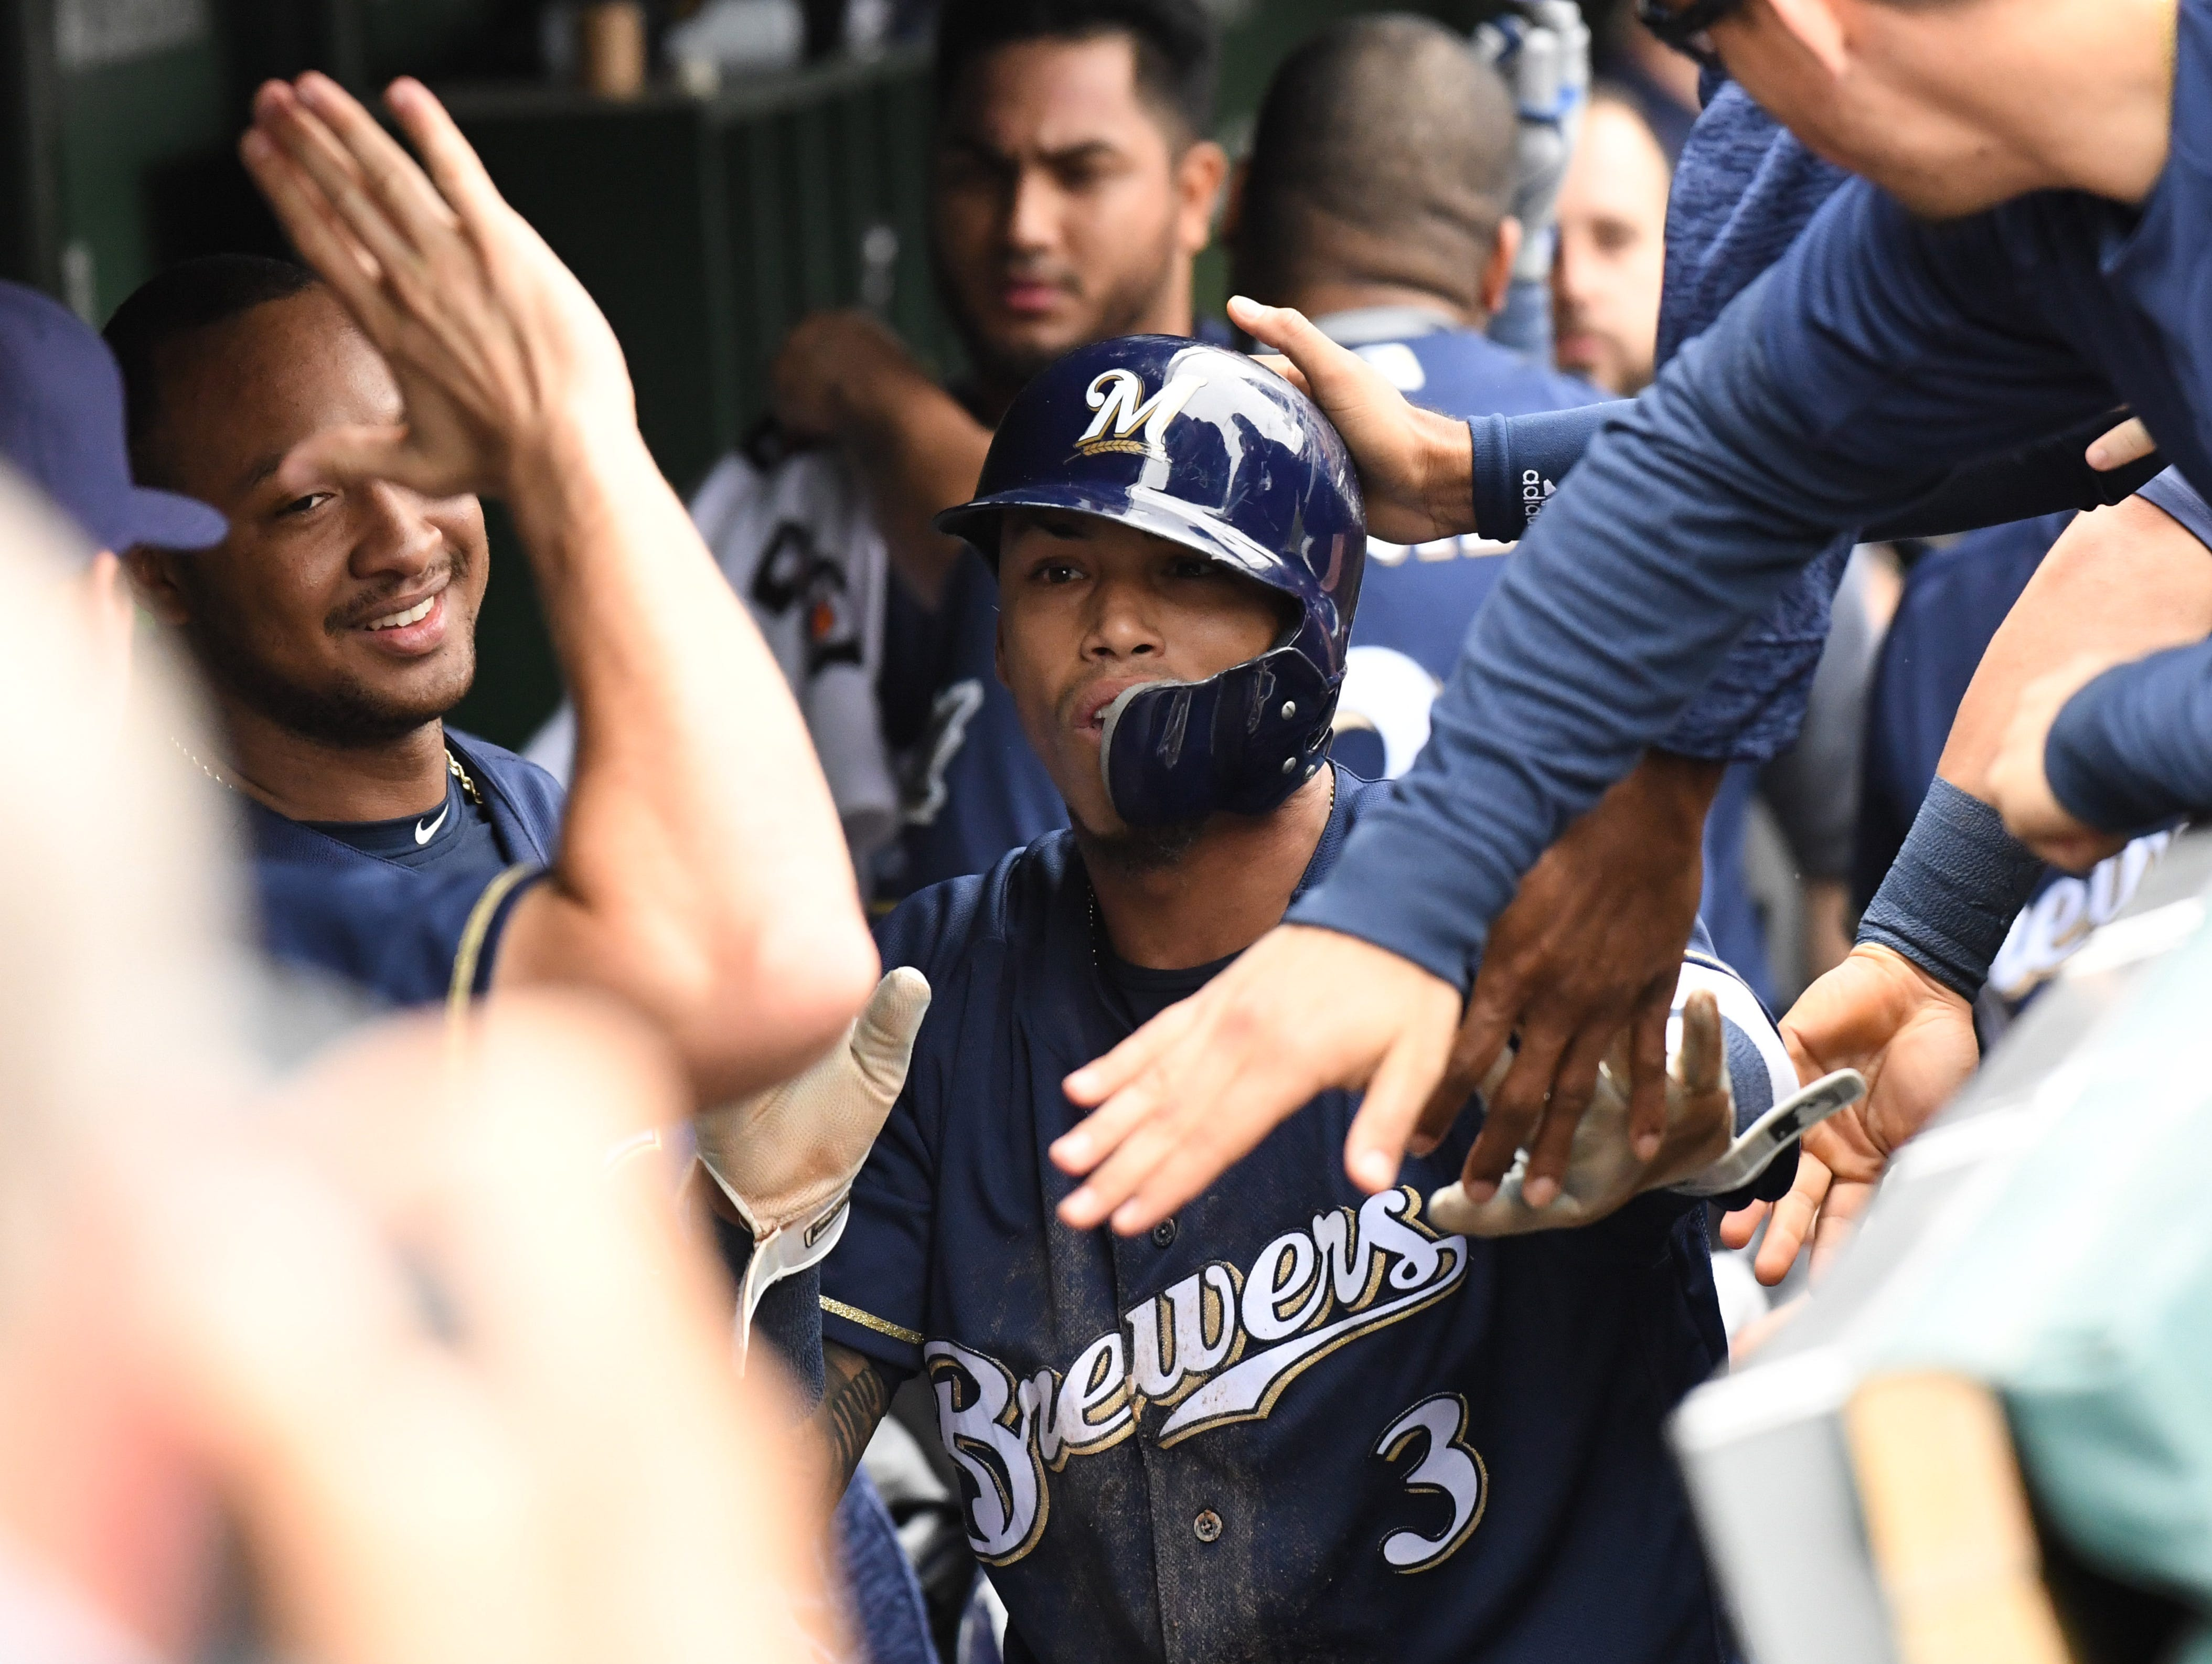 Brewers shortstop Orlando Arcia celebrates in the dugout after scoring in the third inning.